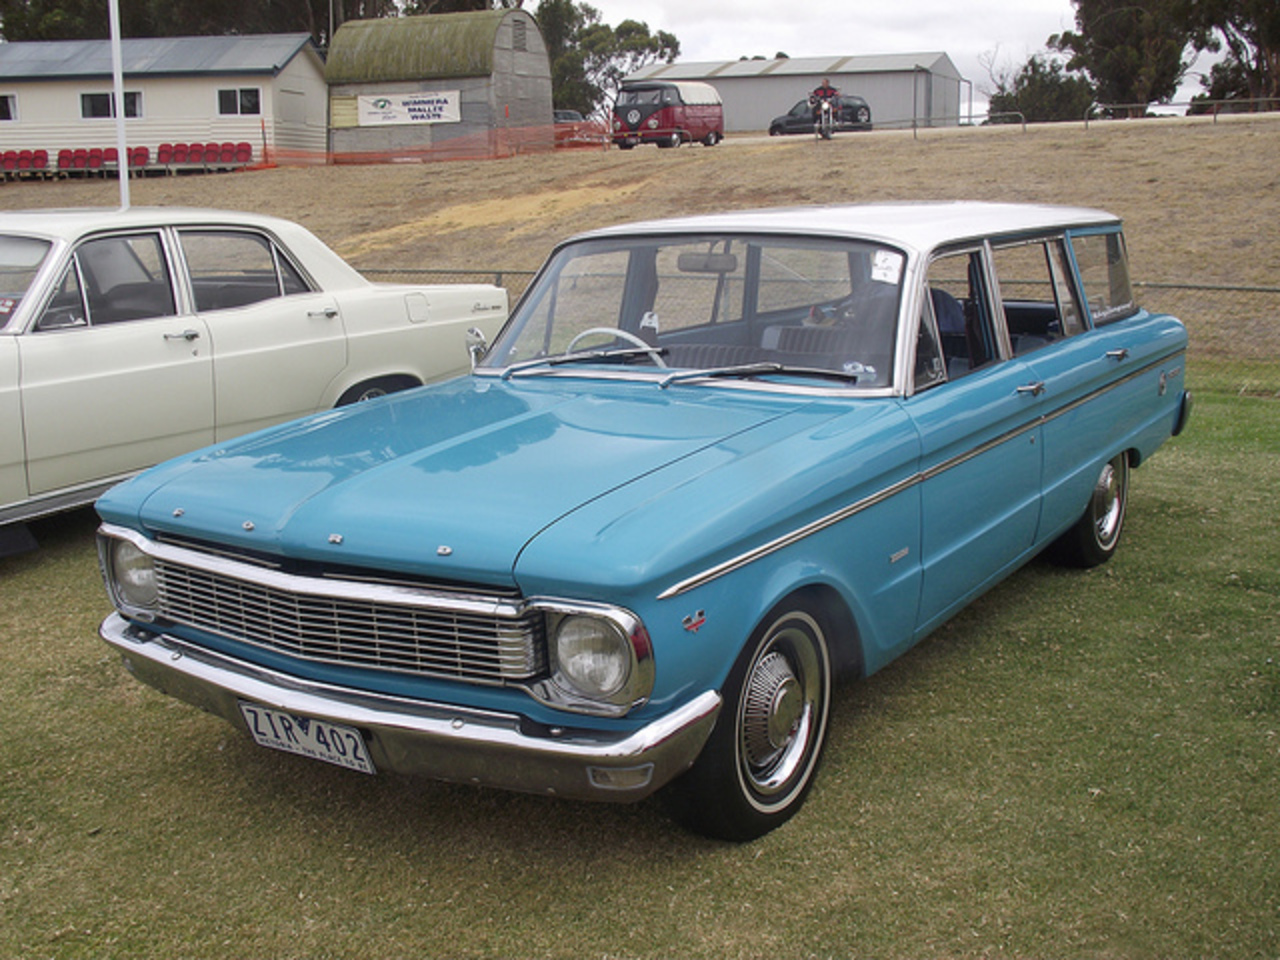 1965 Ford XP Falcon Wagon | Flickr - Photo Sharing!